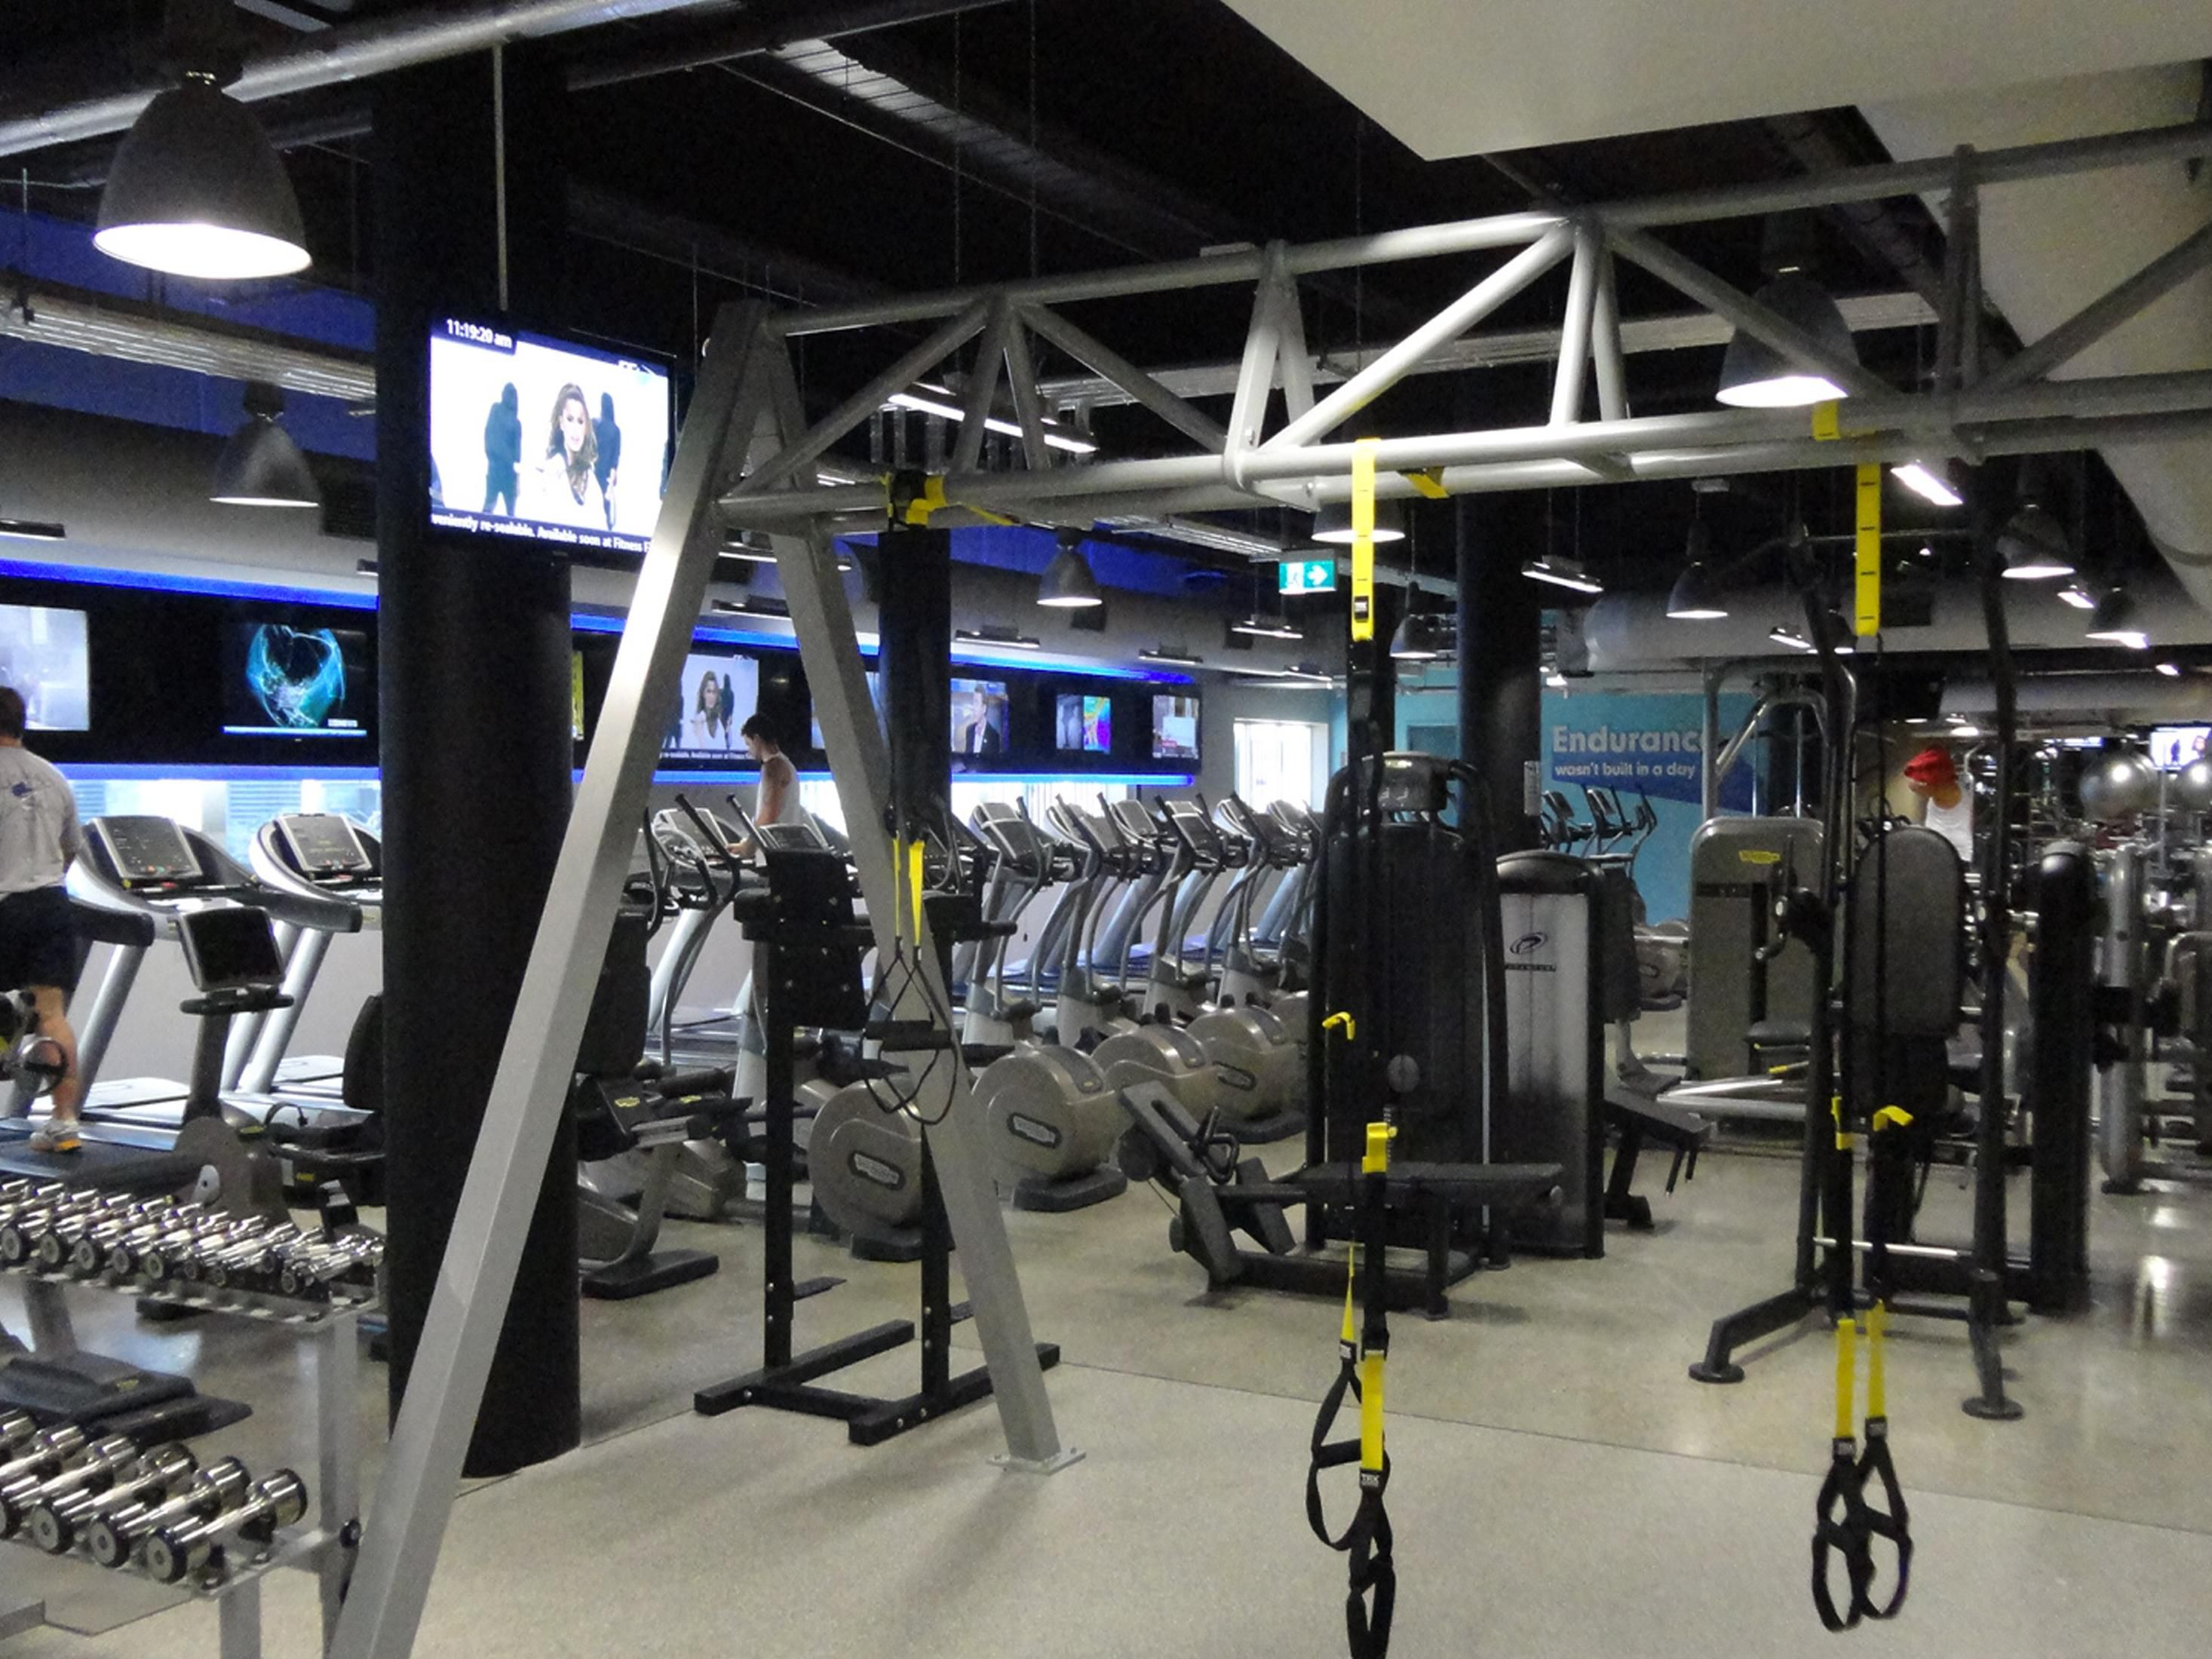 Complimentary guest entry to Goodlife Health Club